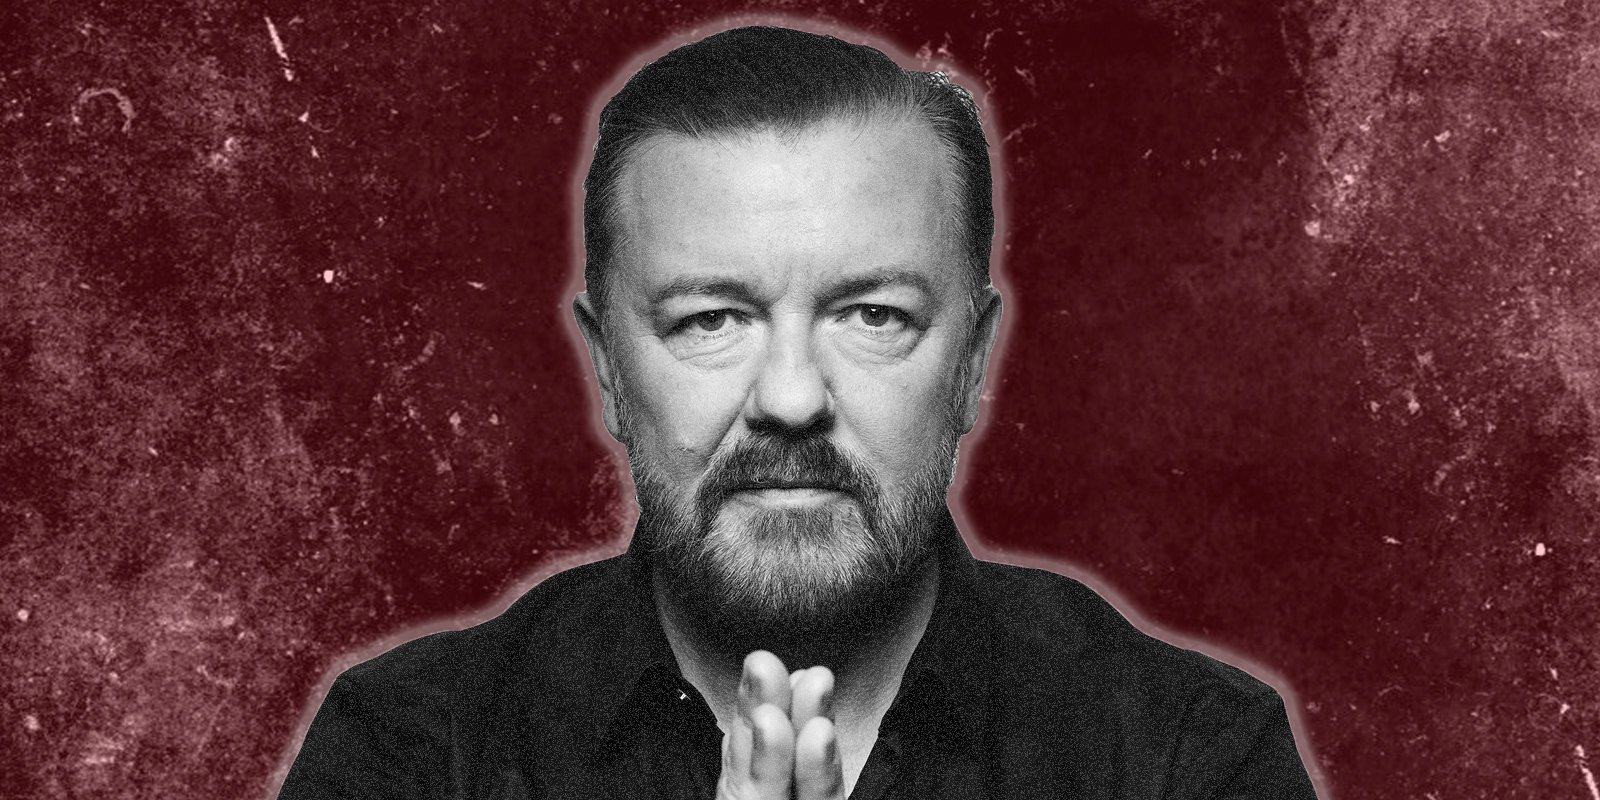 The Golden Globes must stand up for Ricky Gervais and free speech